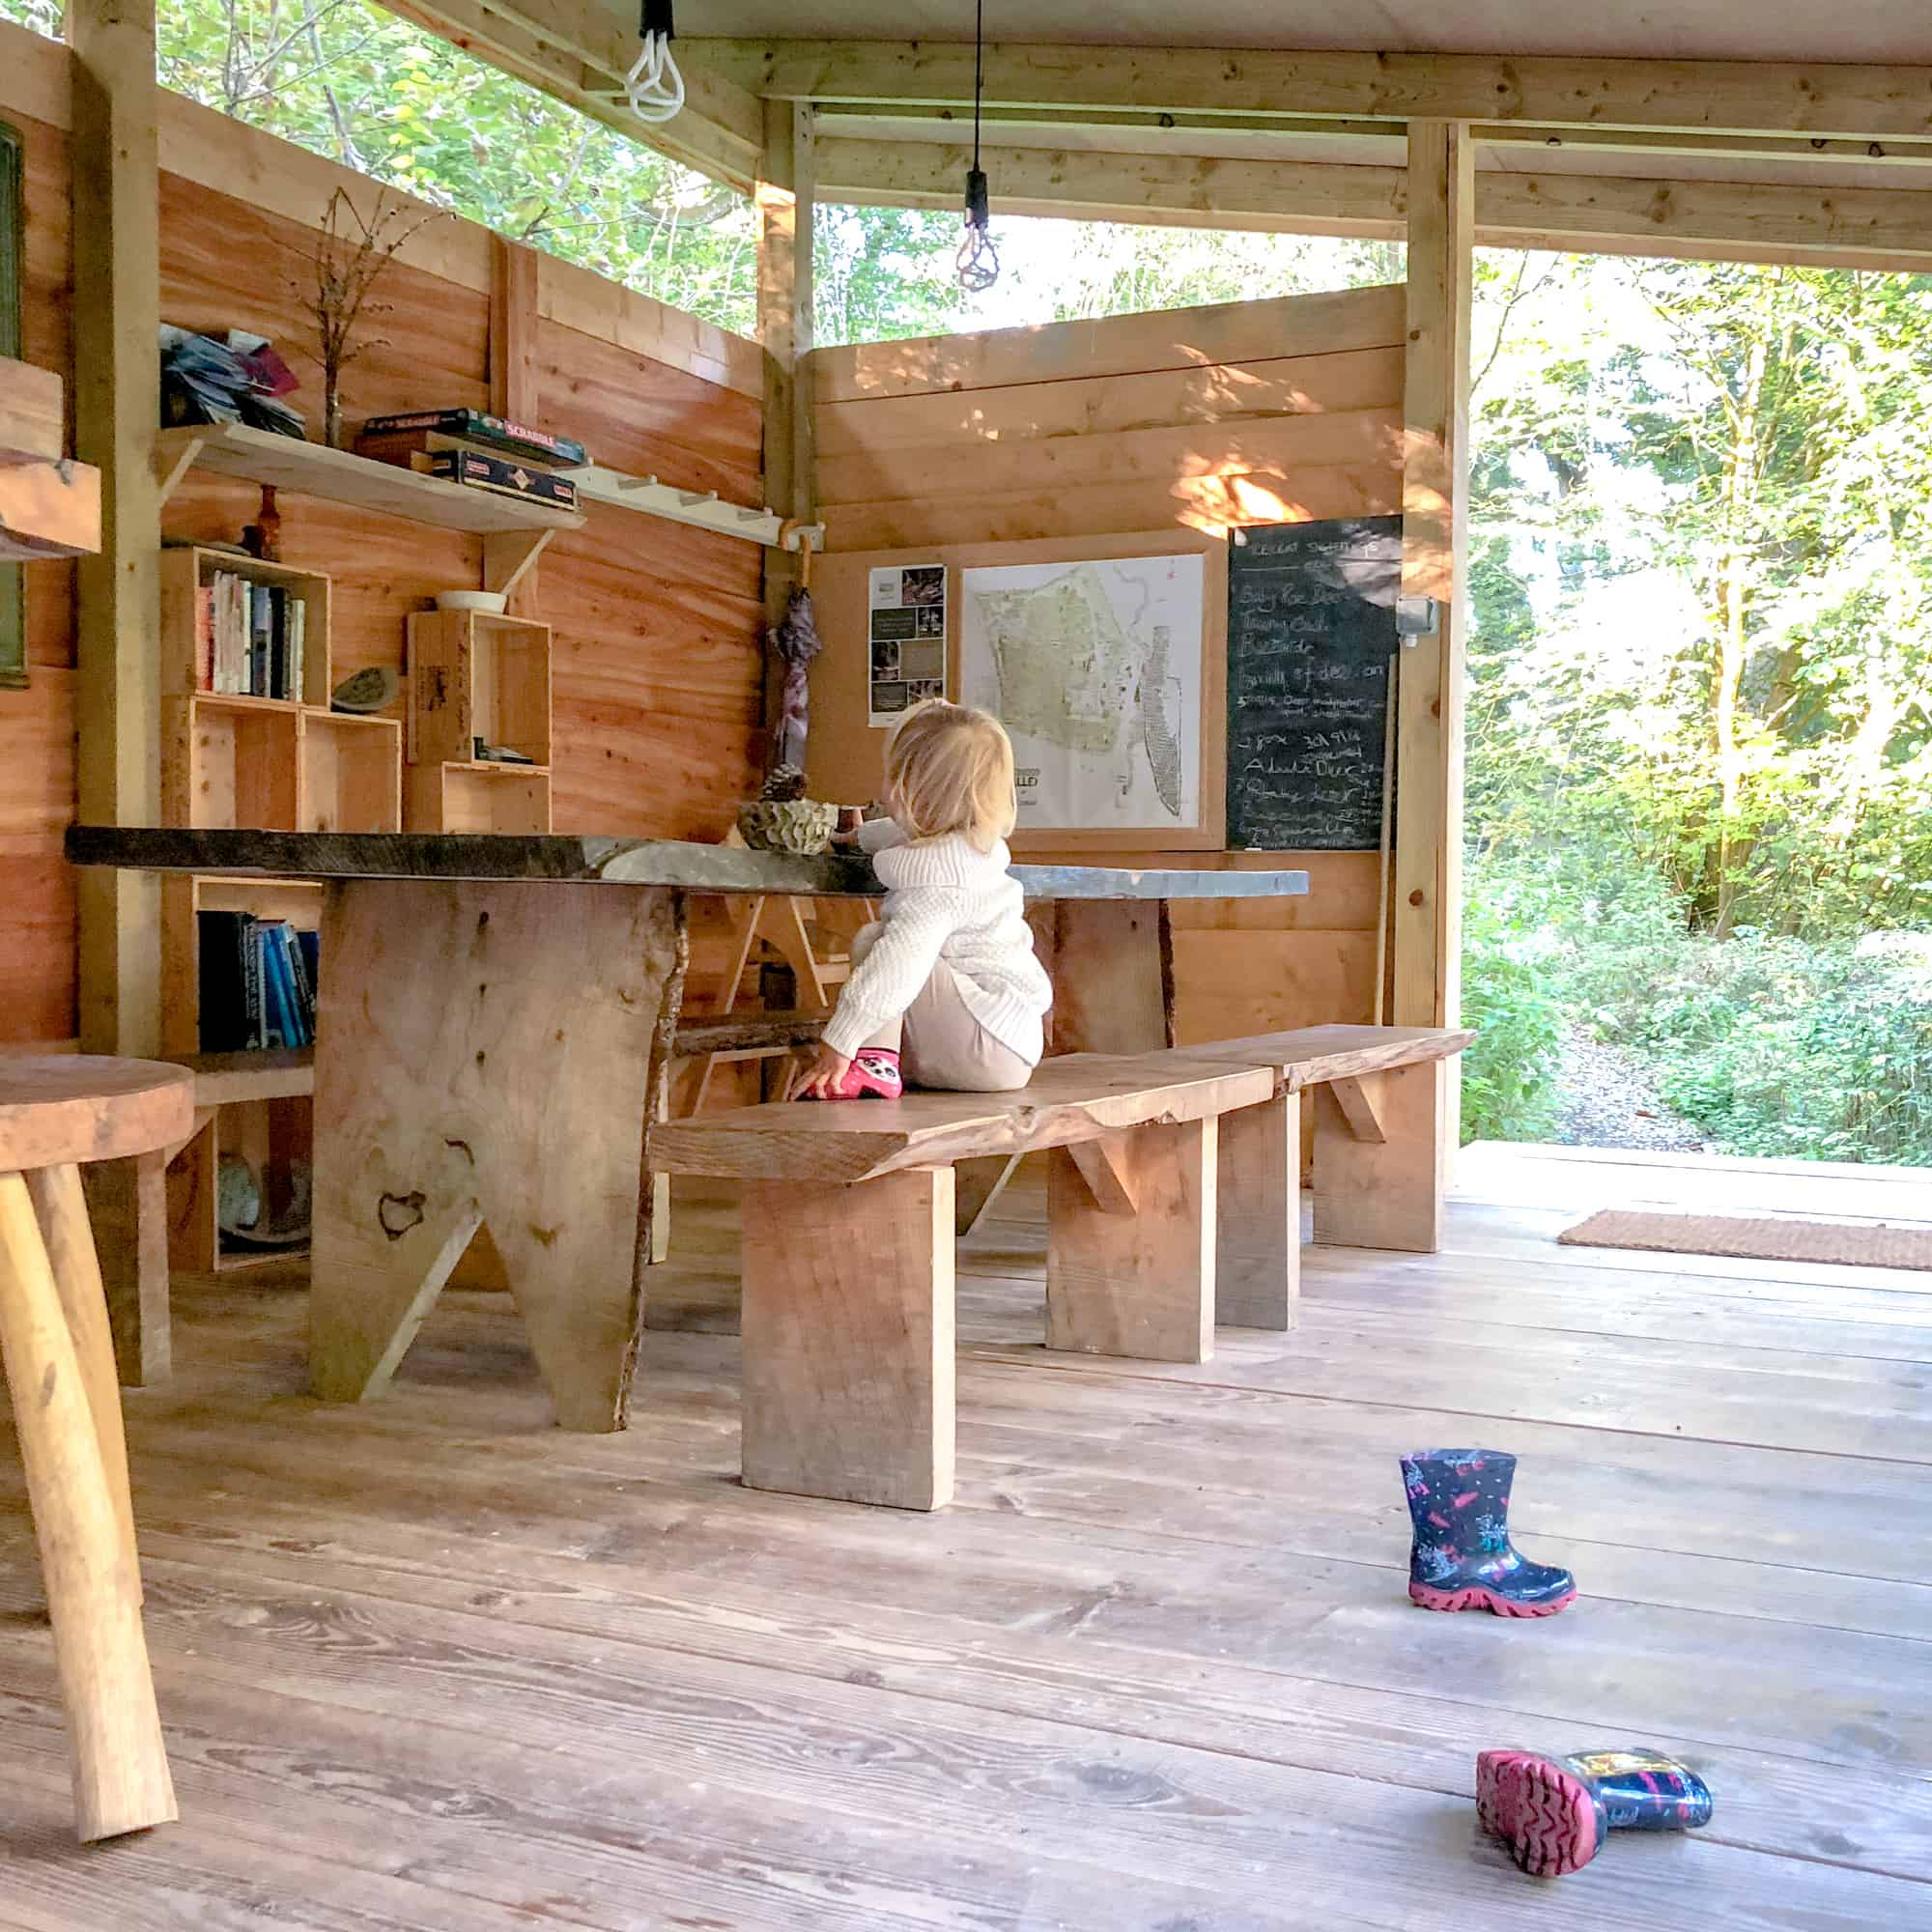 Glamping games room - for glamping packing list